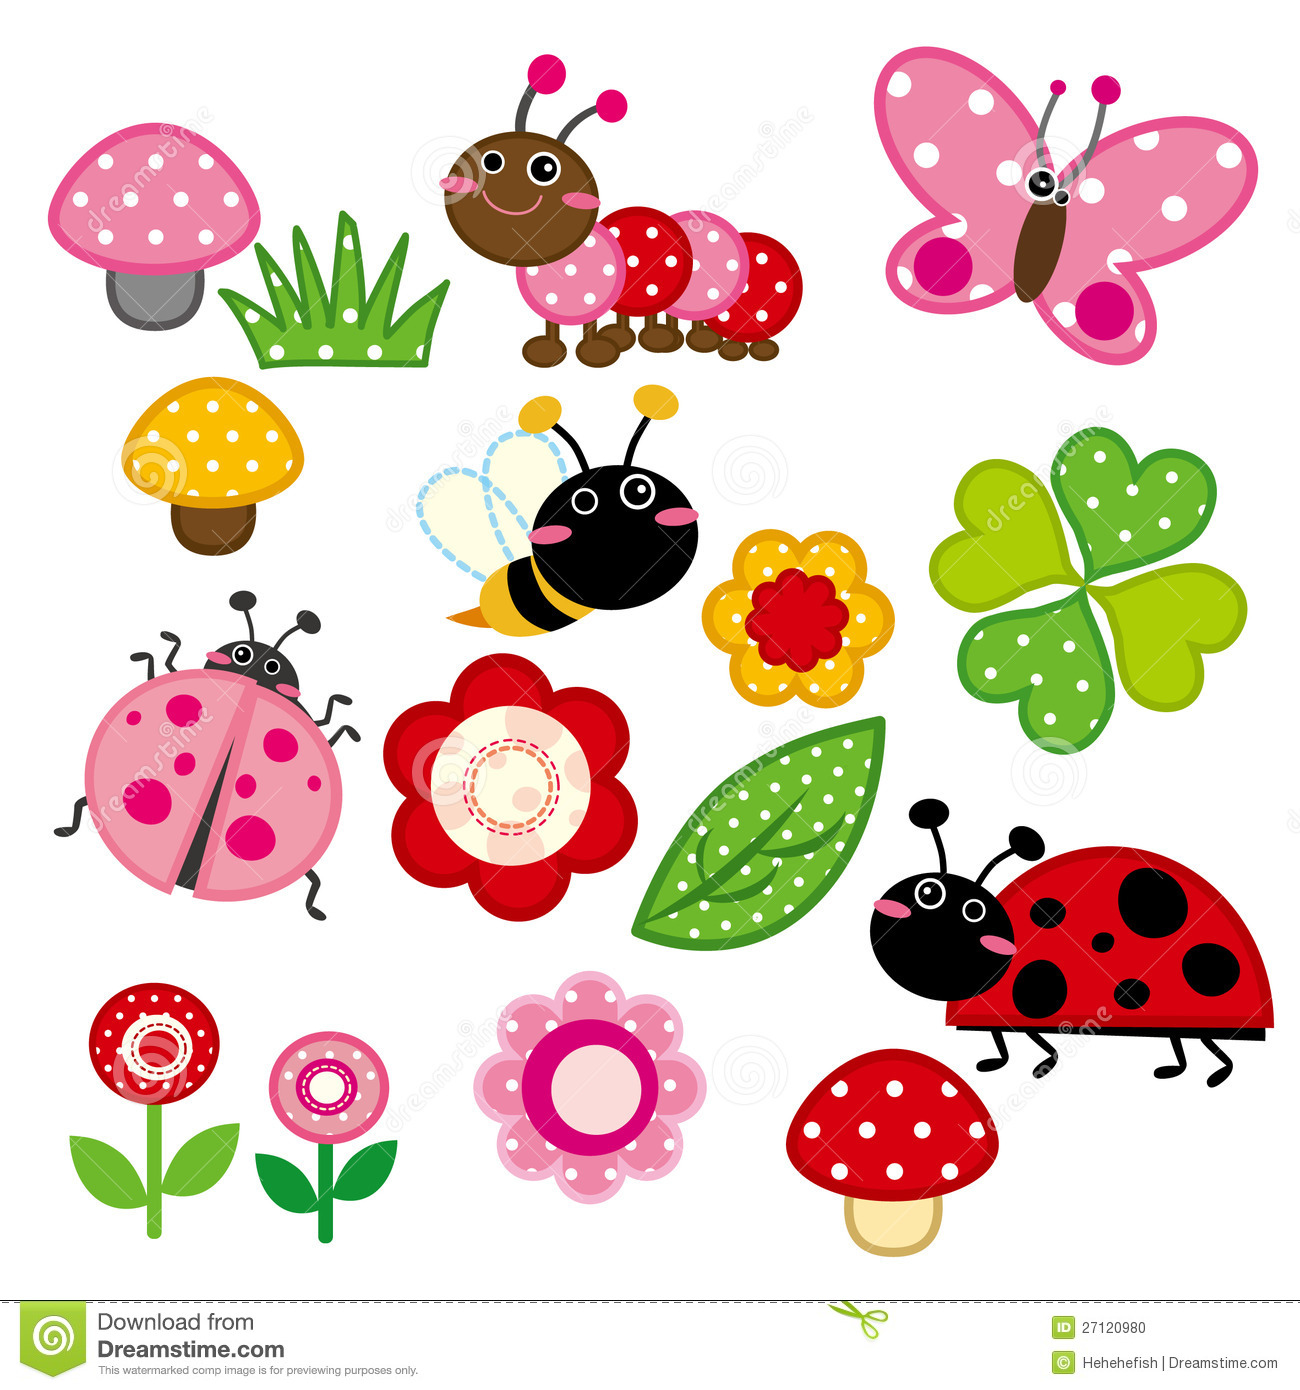 Mushroom clipart insect 27120980 Photo Cute Garden Image: